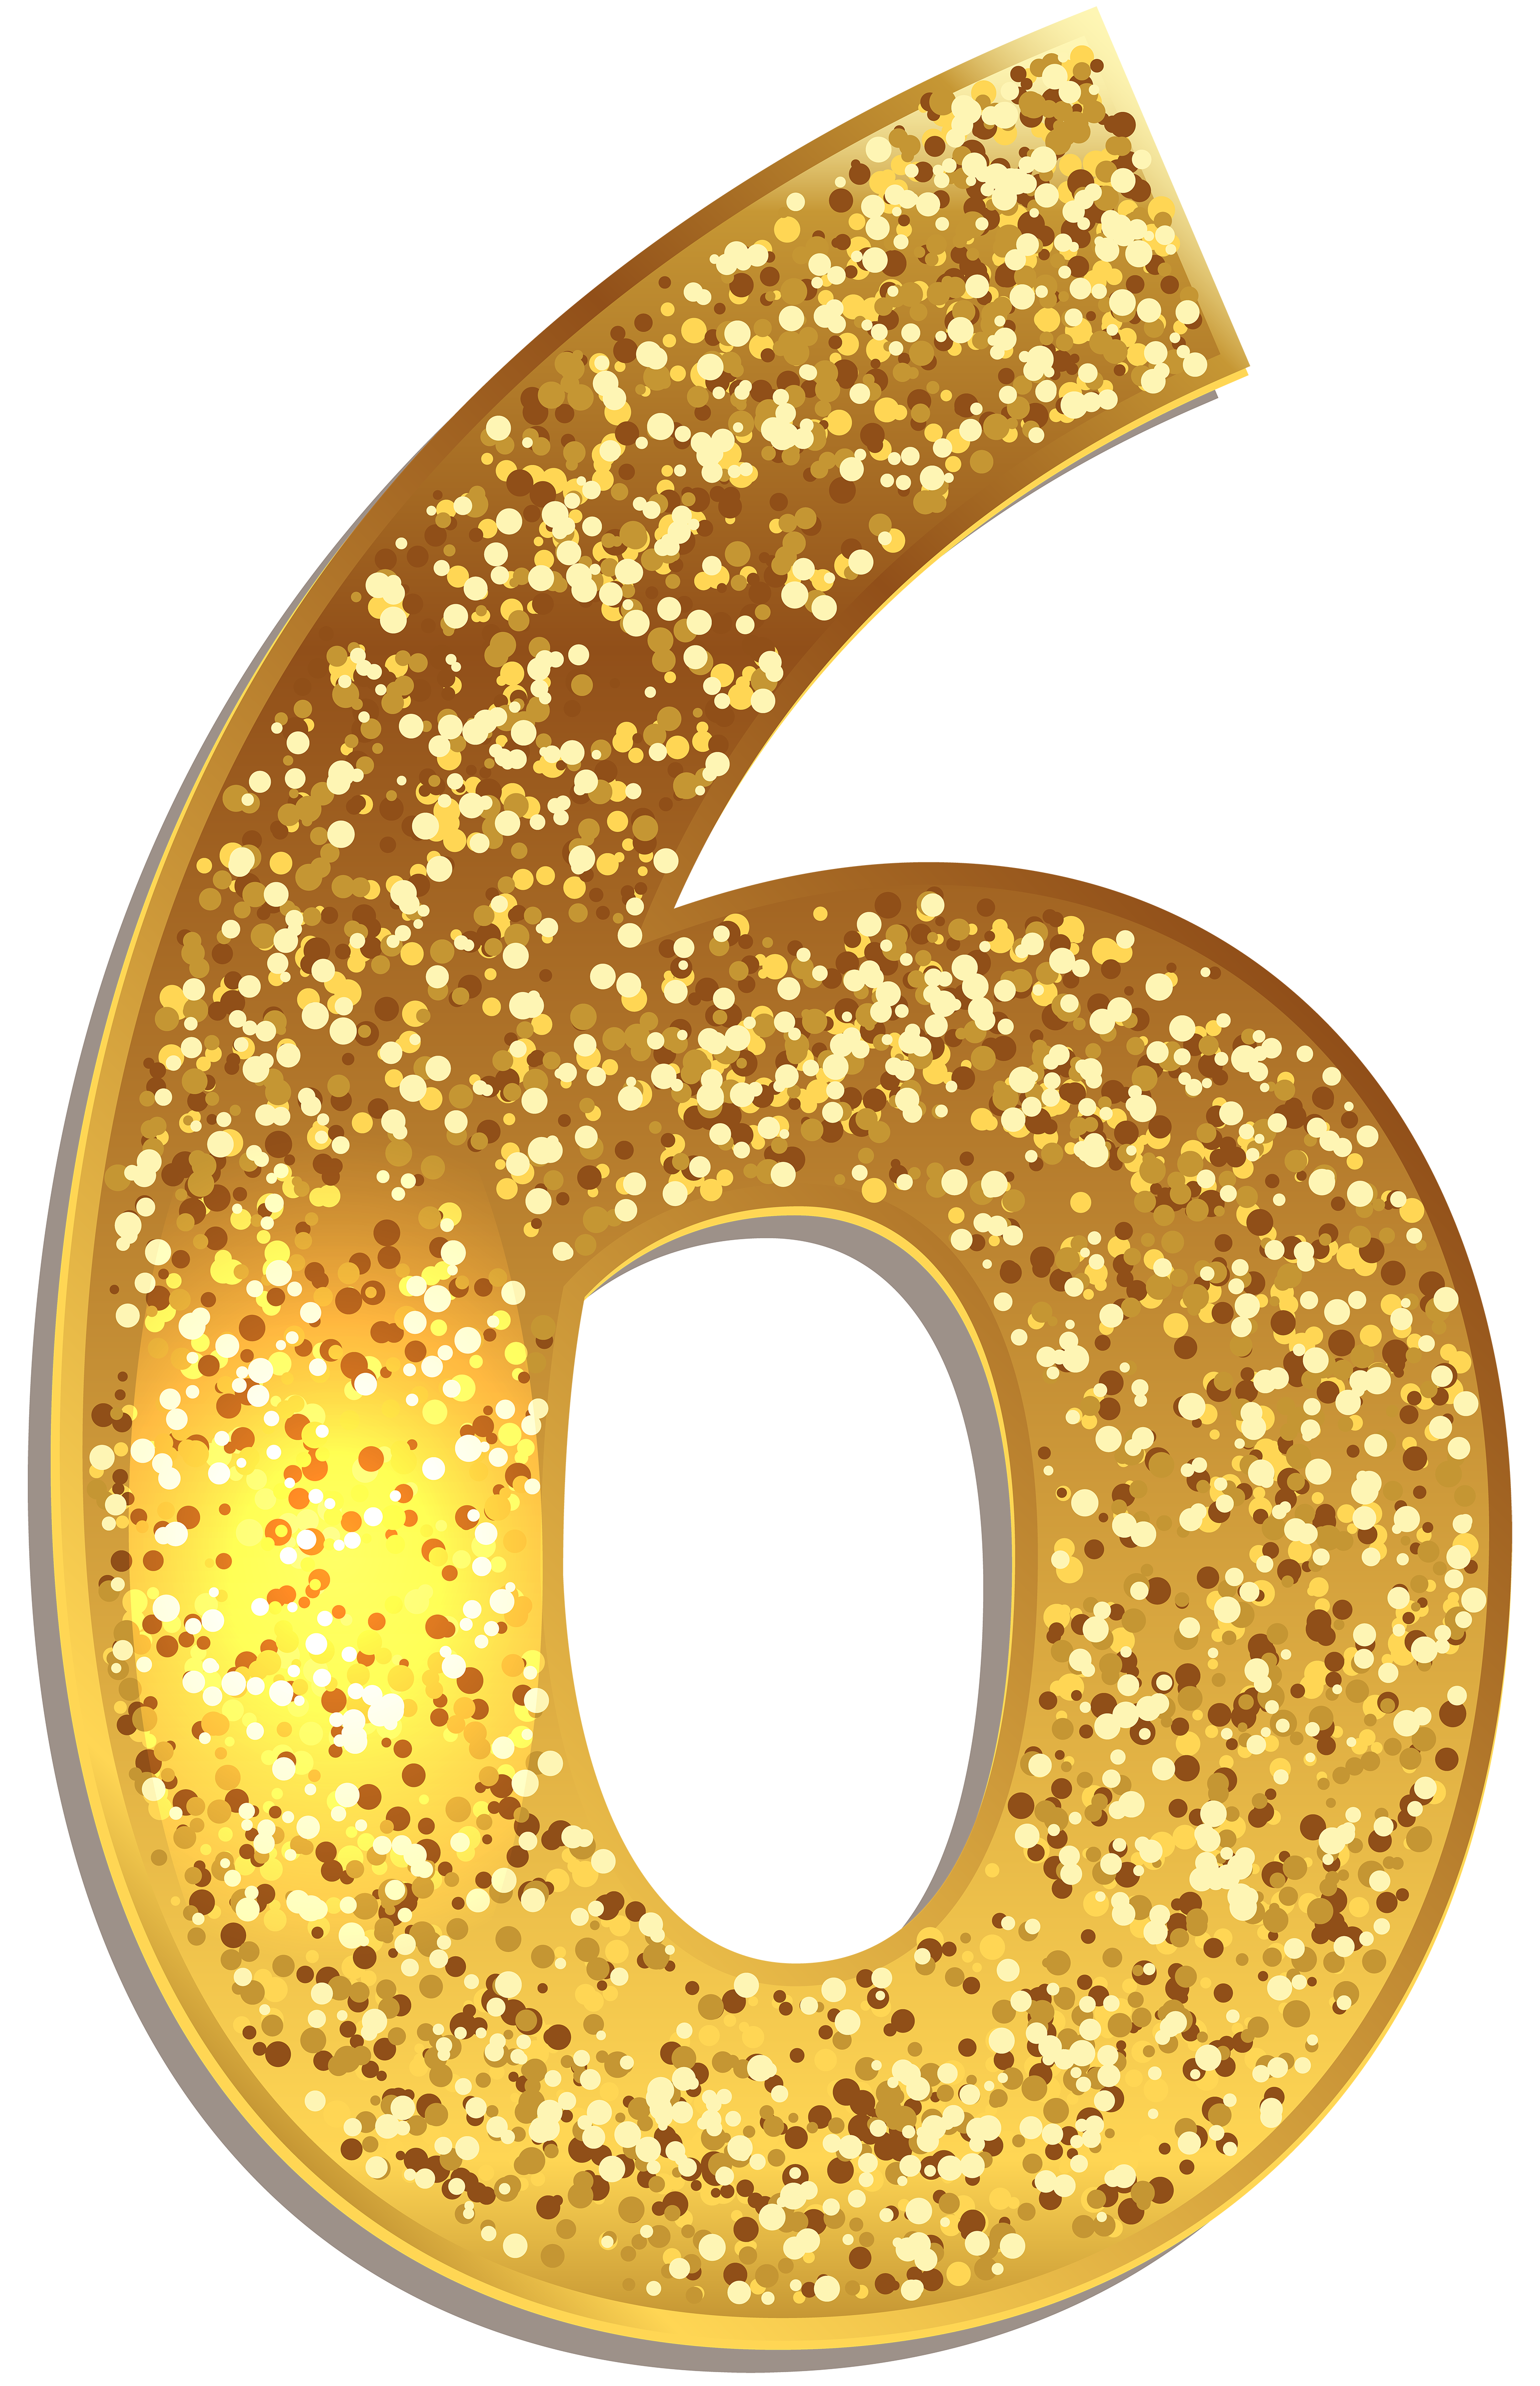 Number Six Gold Shining Clip Art Image